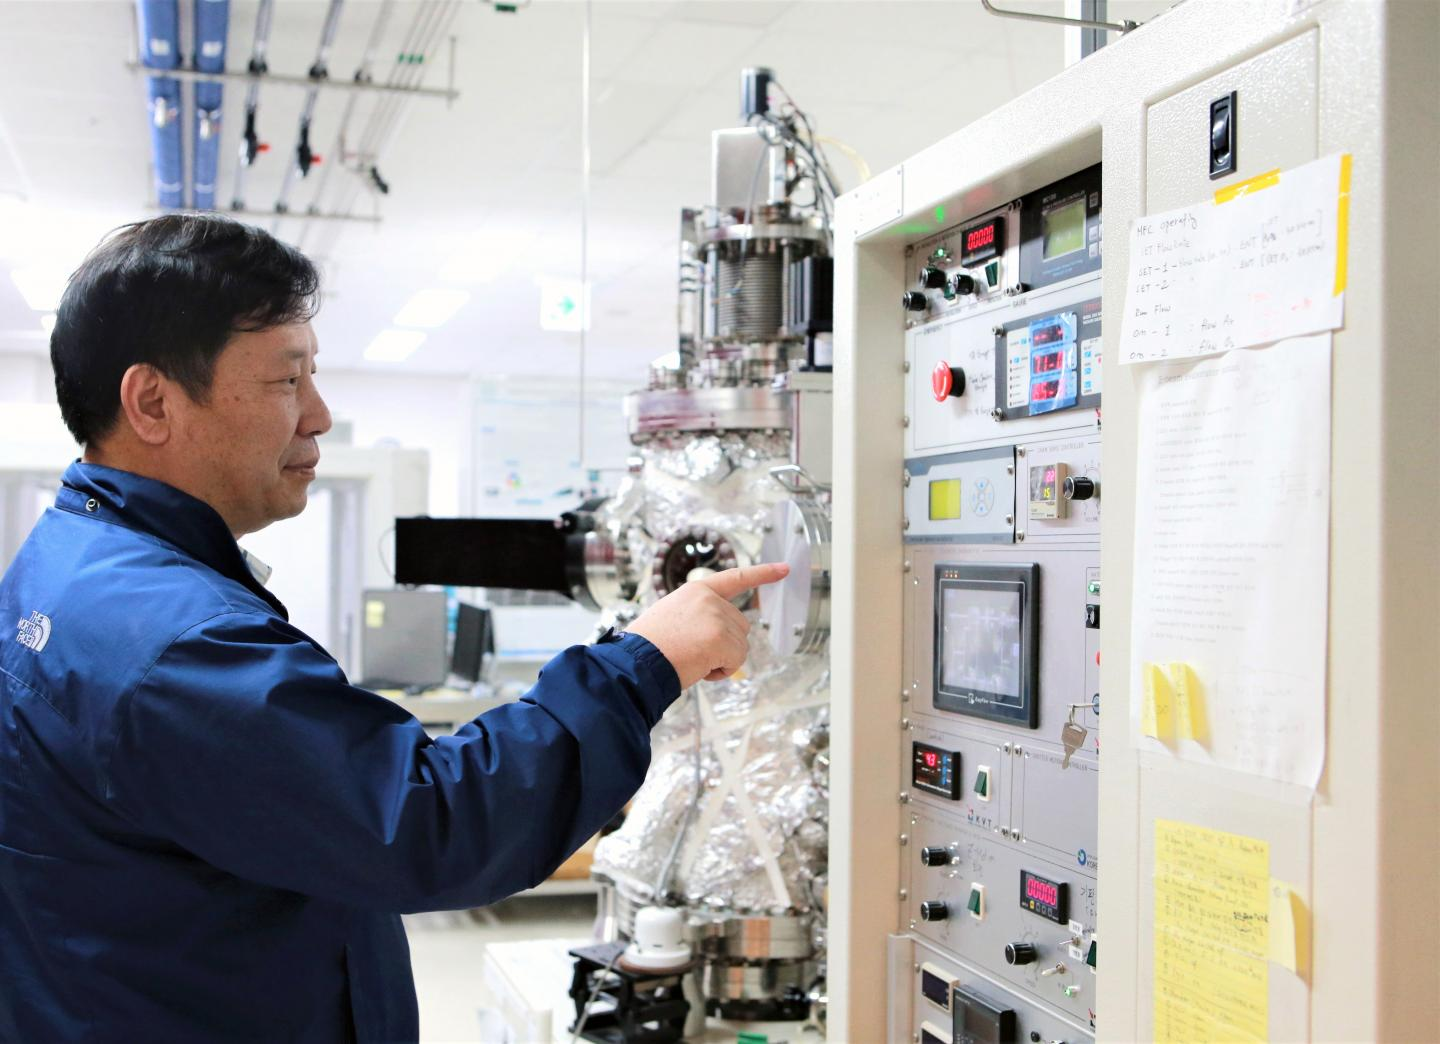 This is Dr. Choi Byeong-dae Choi at DGIST's Intelligent Devices and Systems Research Group. (Daegu Gyeongbuk Institute of Science and Technology (DGIST))